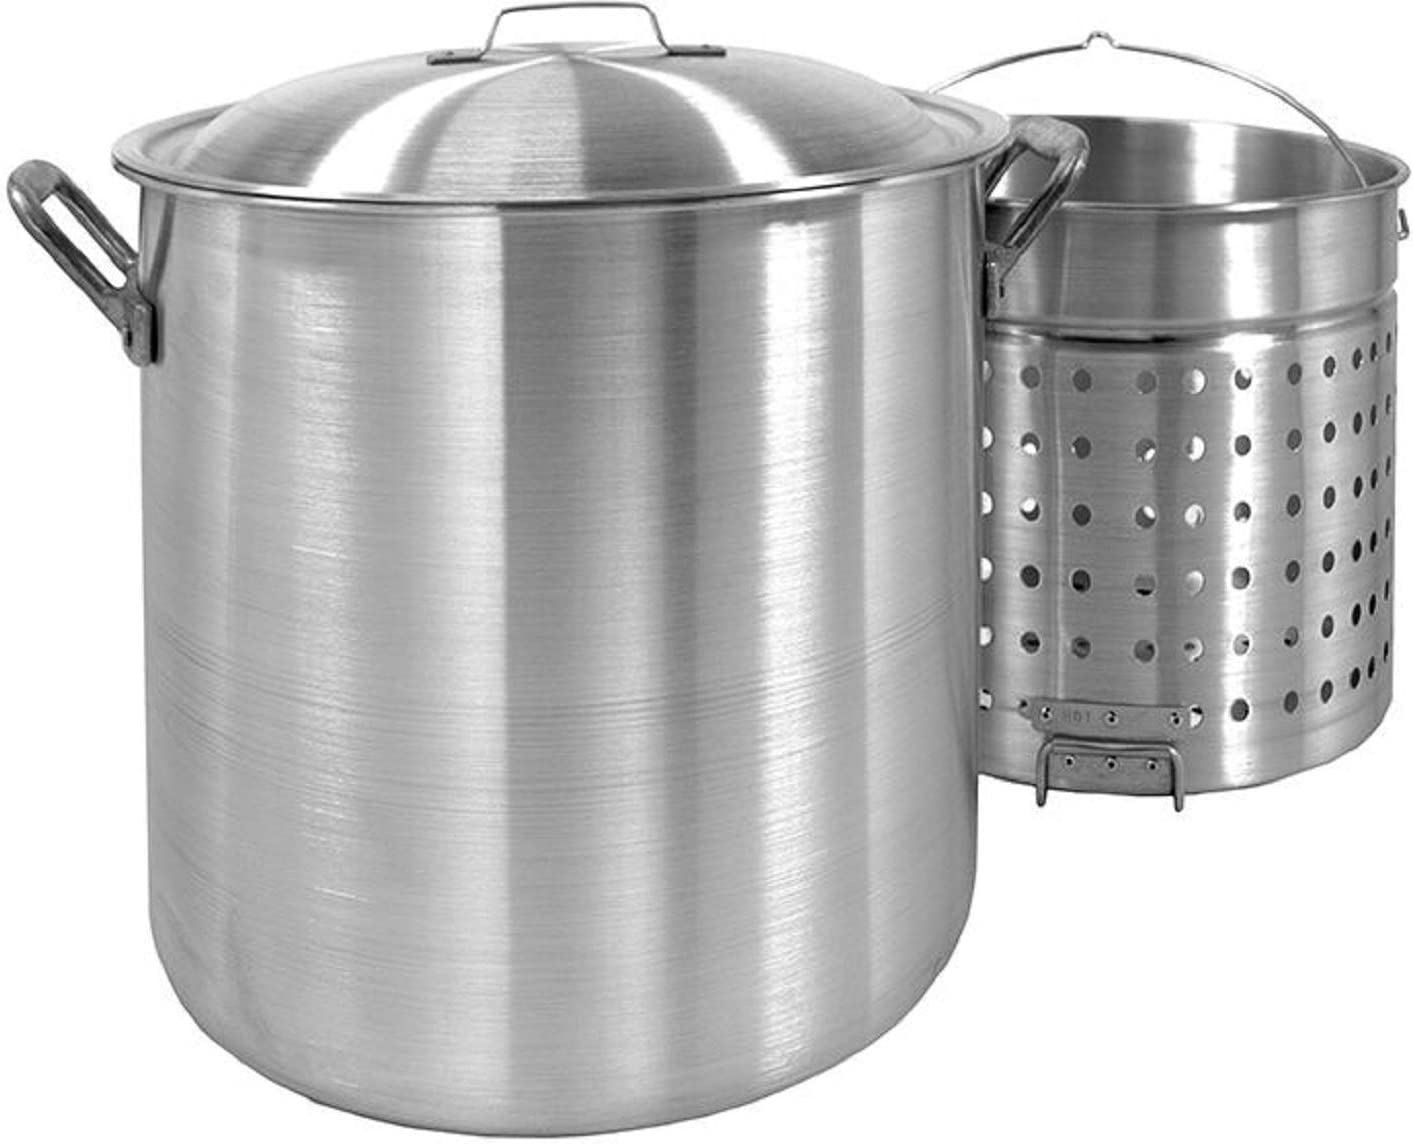 Bayou Classic 1200 120-Quart Aluminum Stockpot with Boil Basket